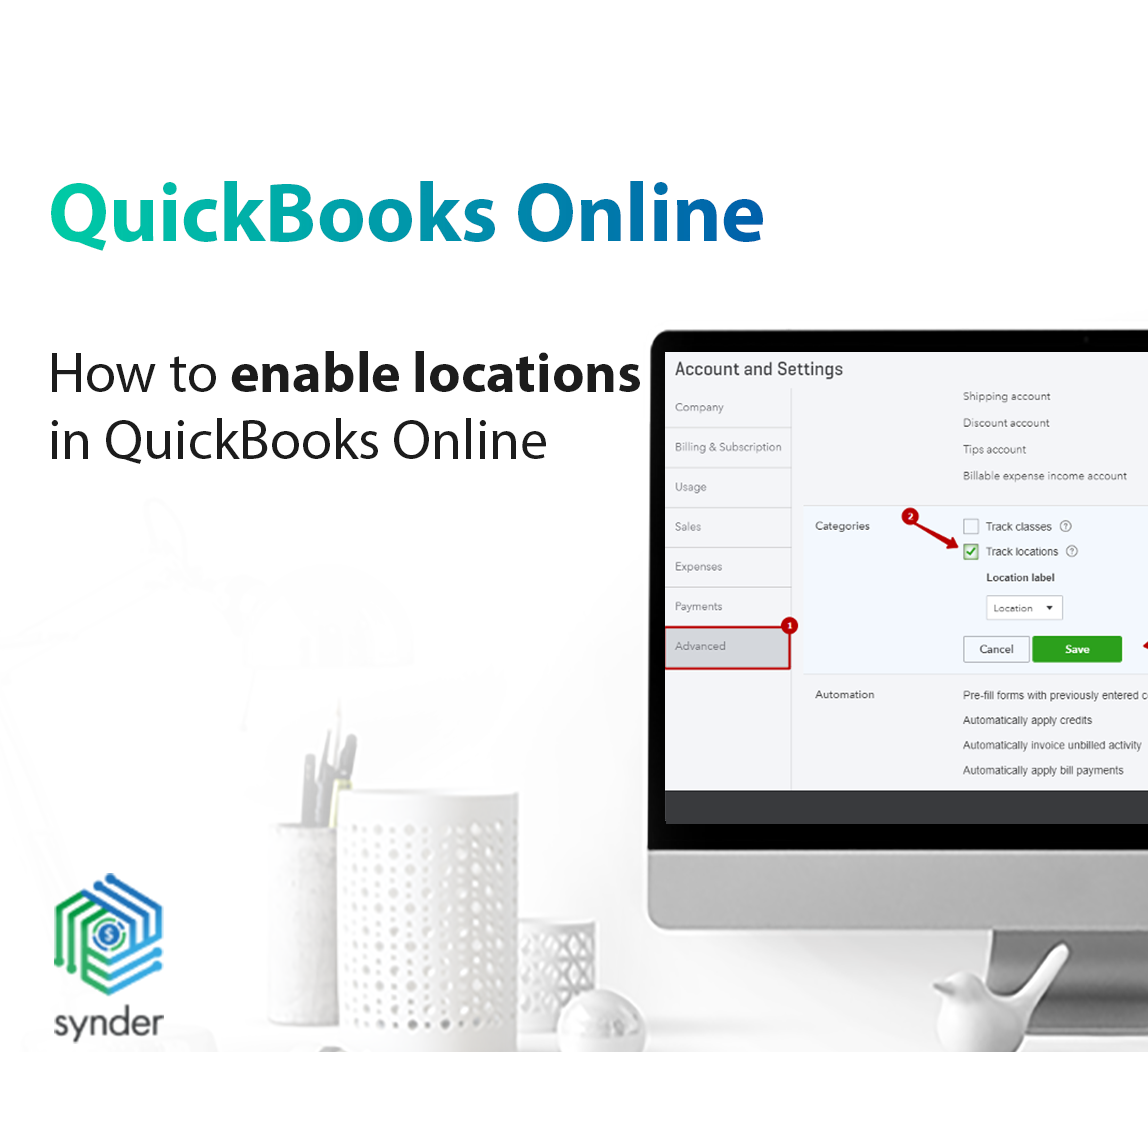 enable locations in QuickBooks Online